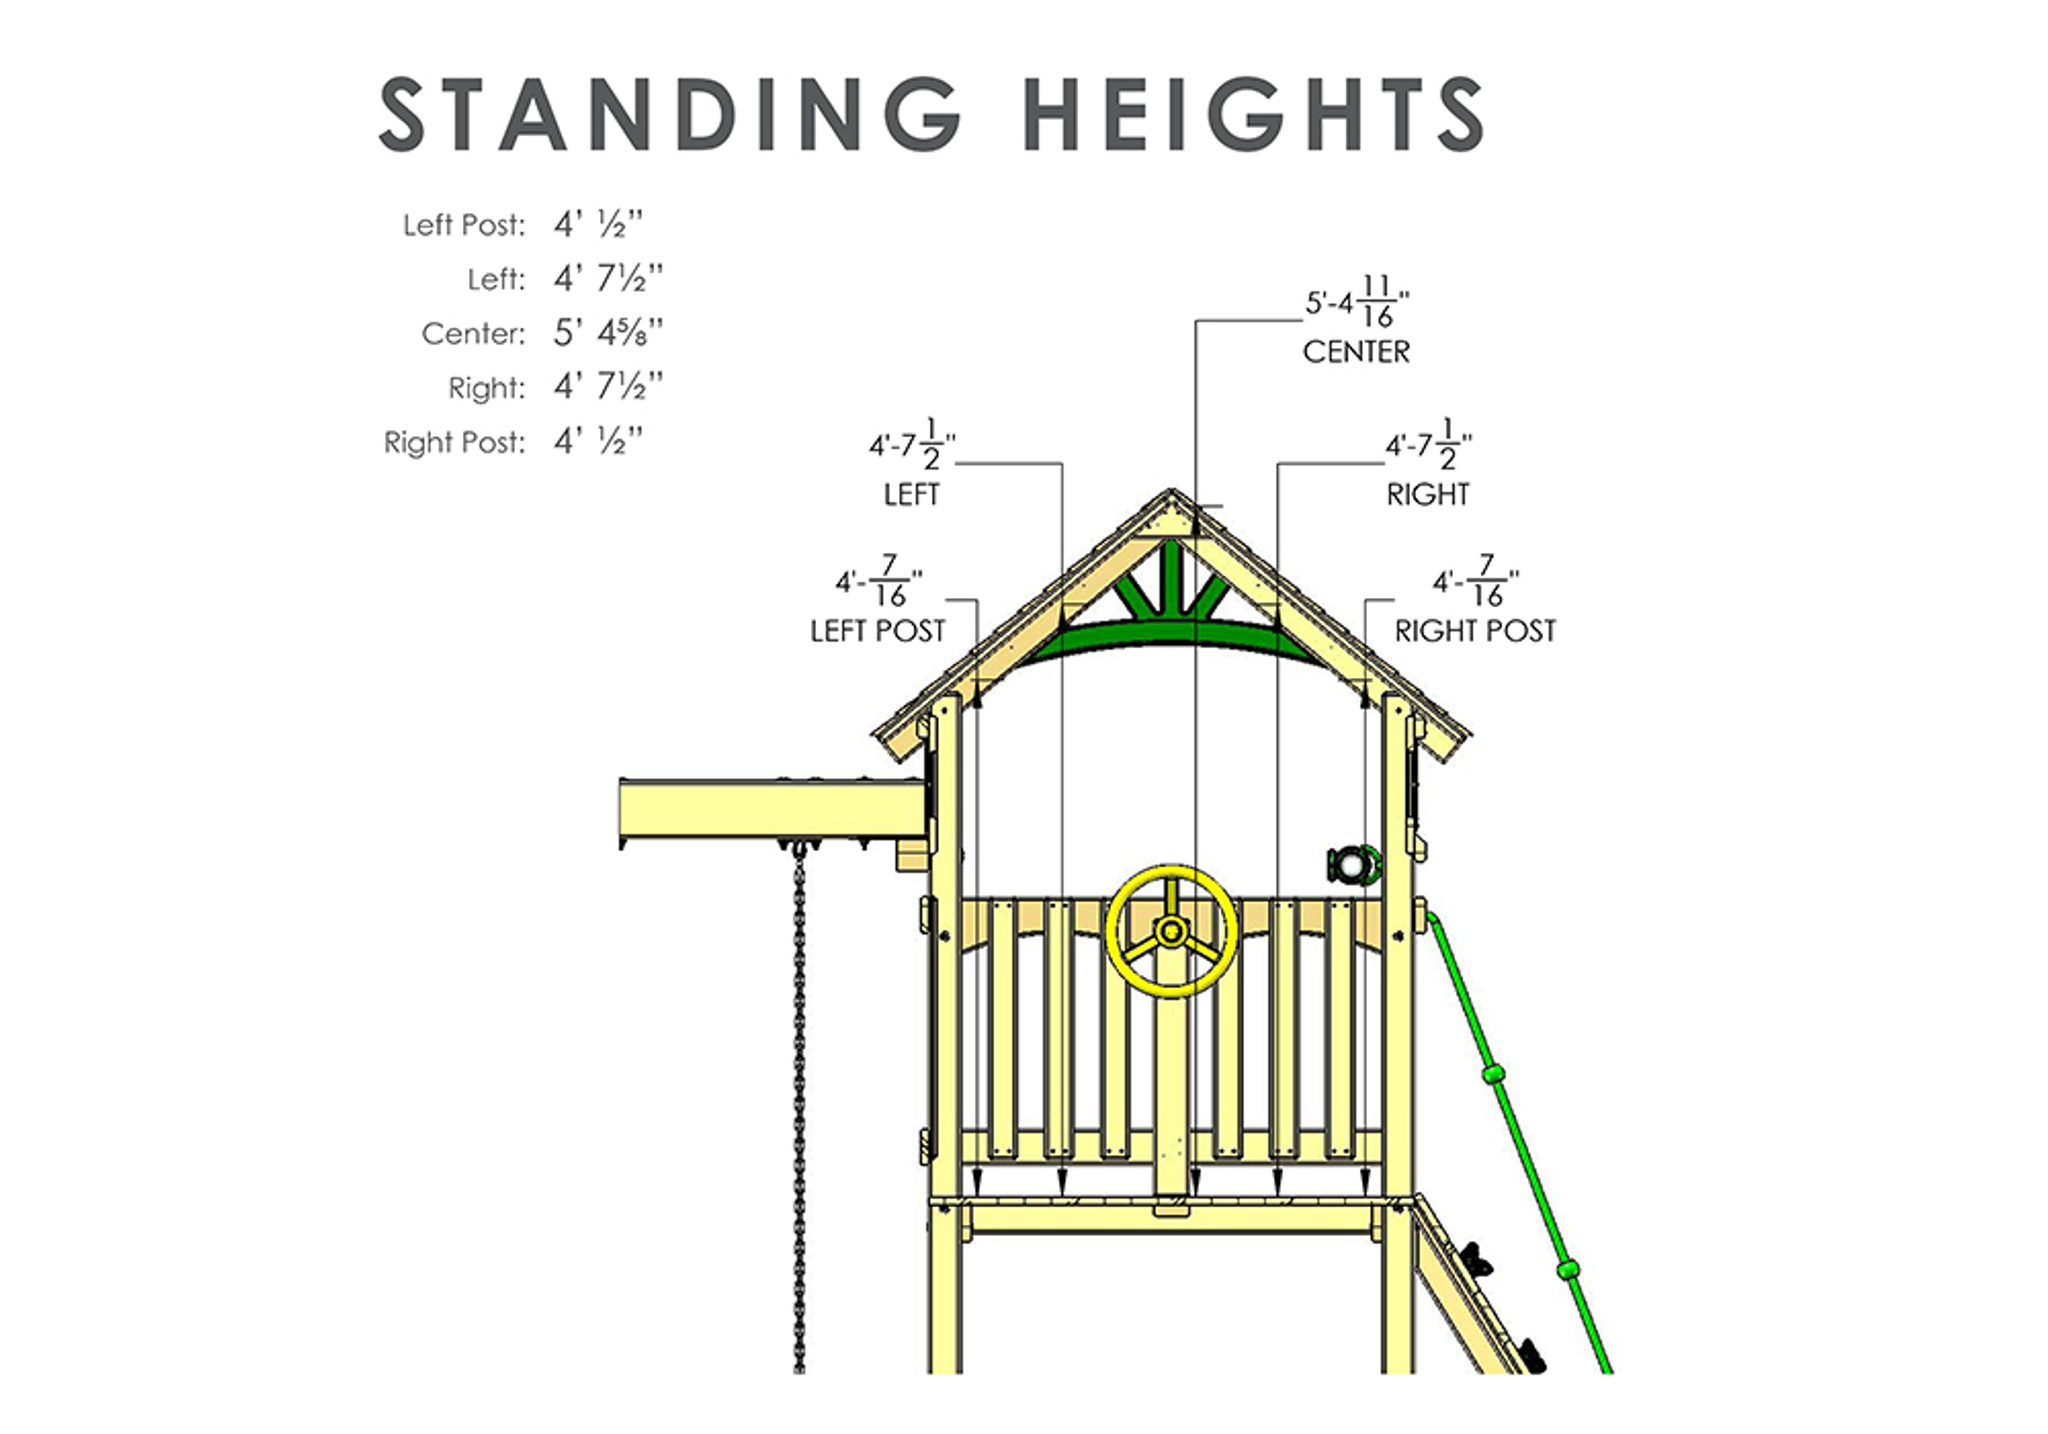 Wood Roof Standing Heights View of Passage II w/ Dual Slide Swingset from Playnation